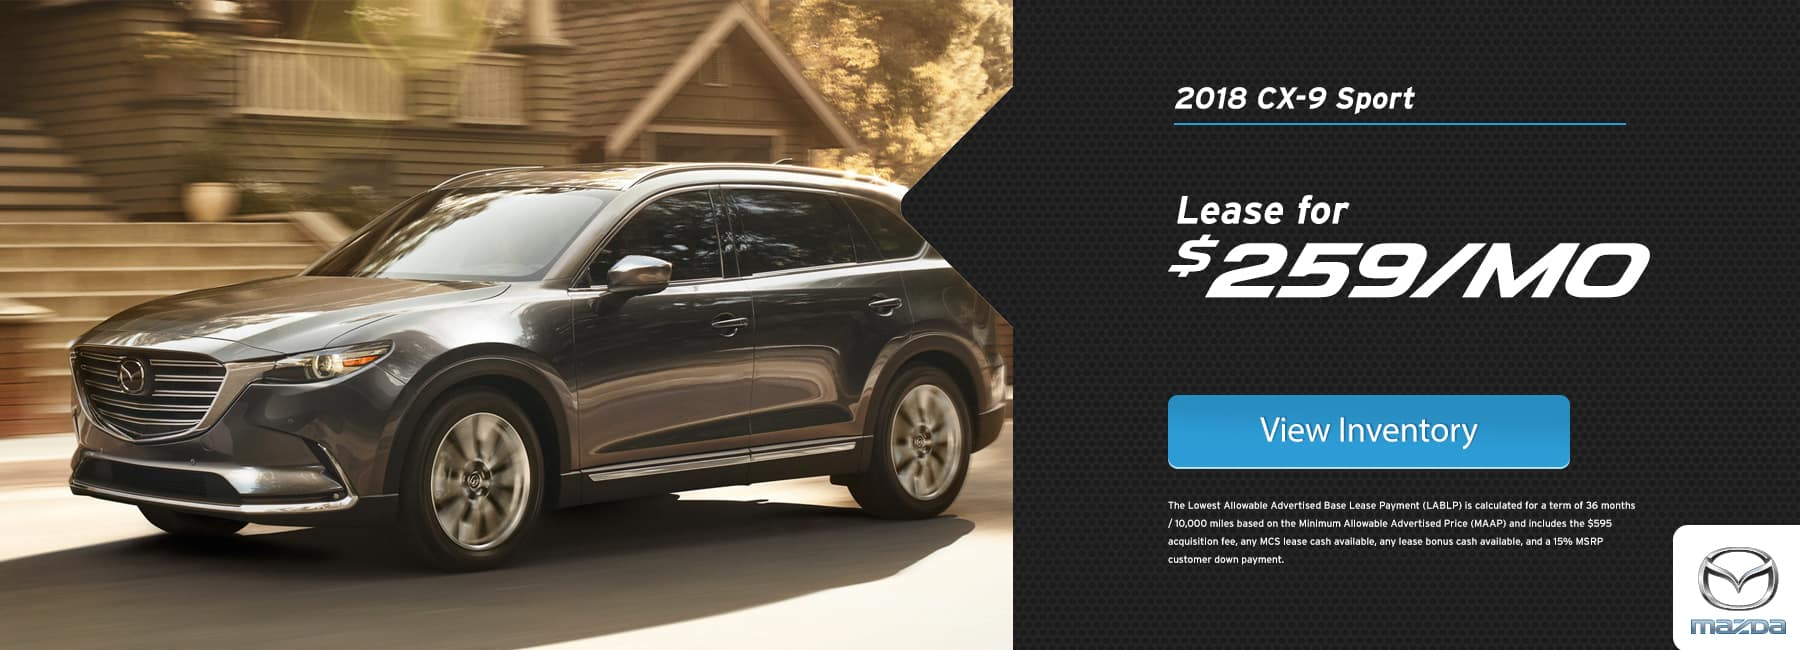 CX-9 Lease Special January